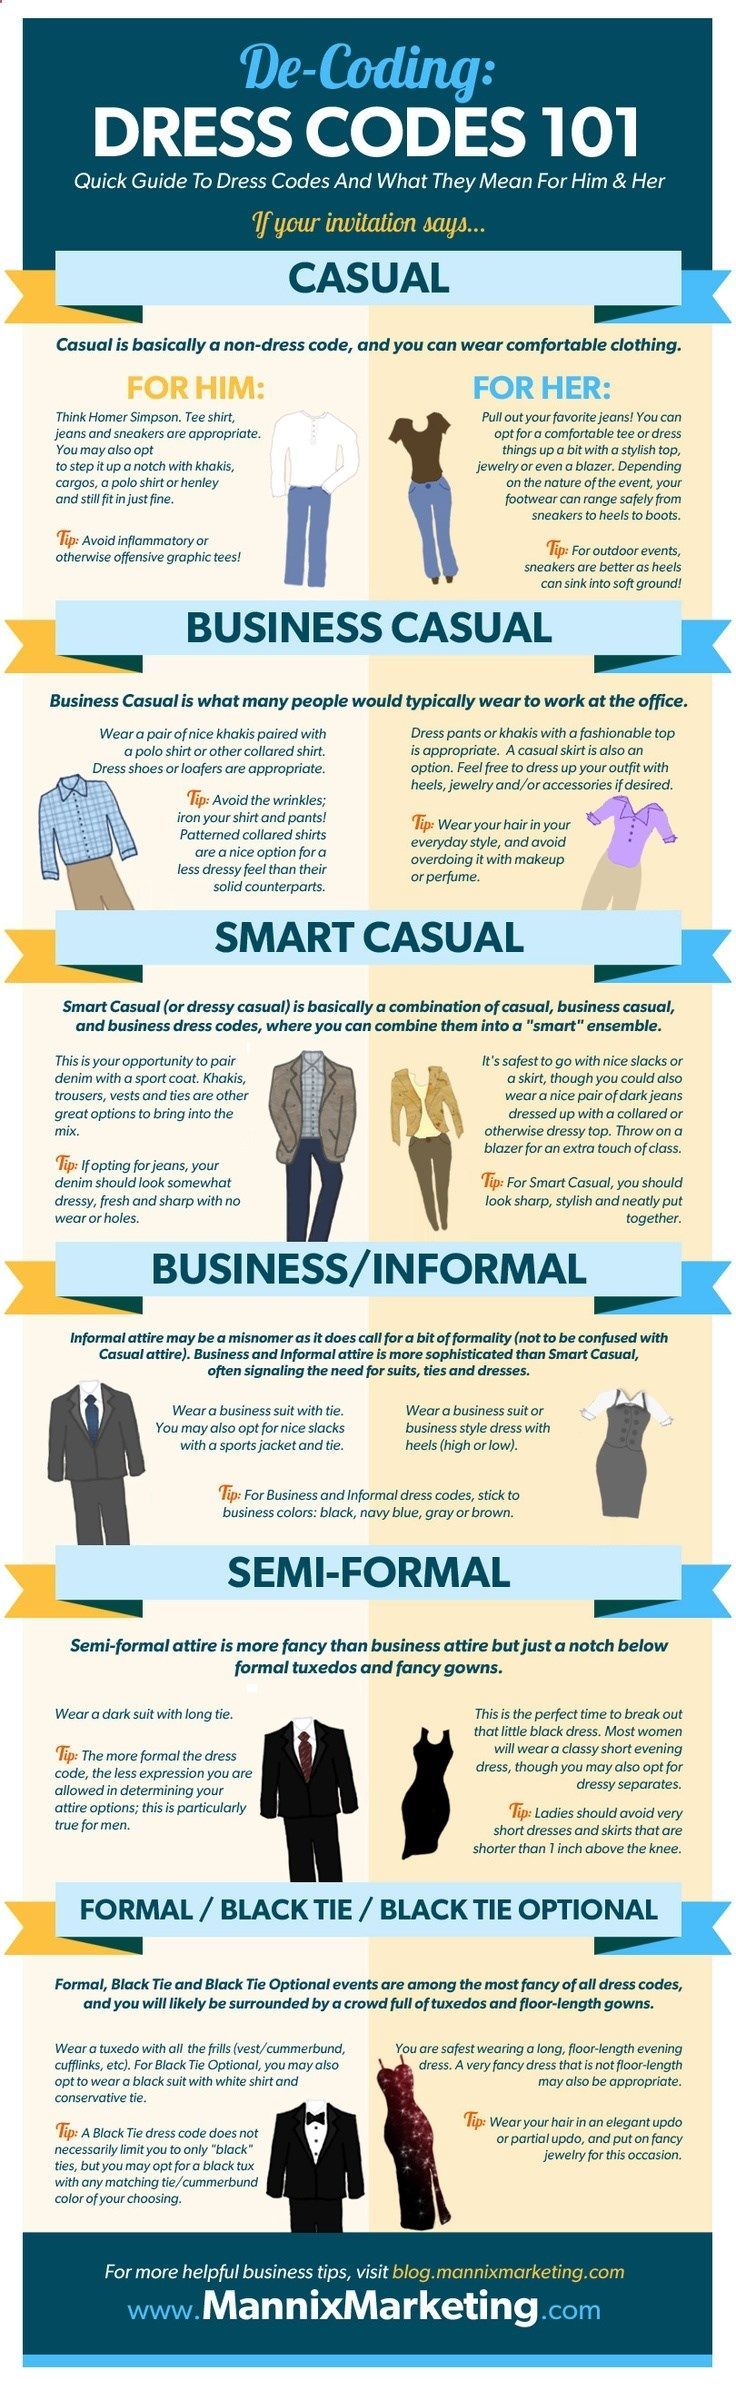 De-Coding Dress Codes: Quick guide To Dress Codes and What they mean for him and her. If your invitation says Casual, Business Casual, Smart Casual, Business/Informal, Semi-informal, Formal